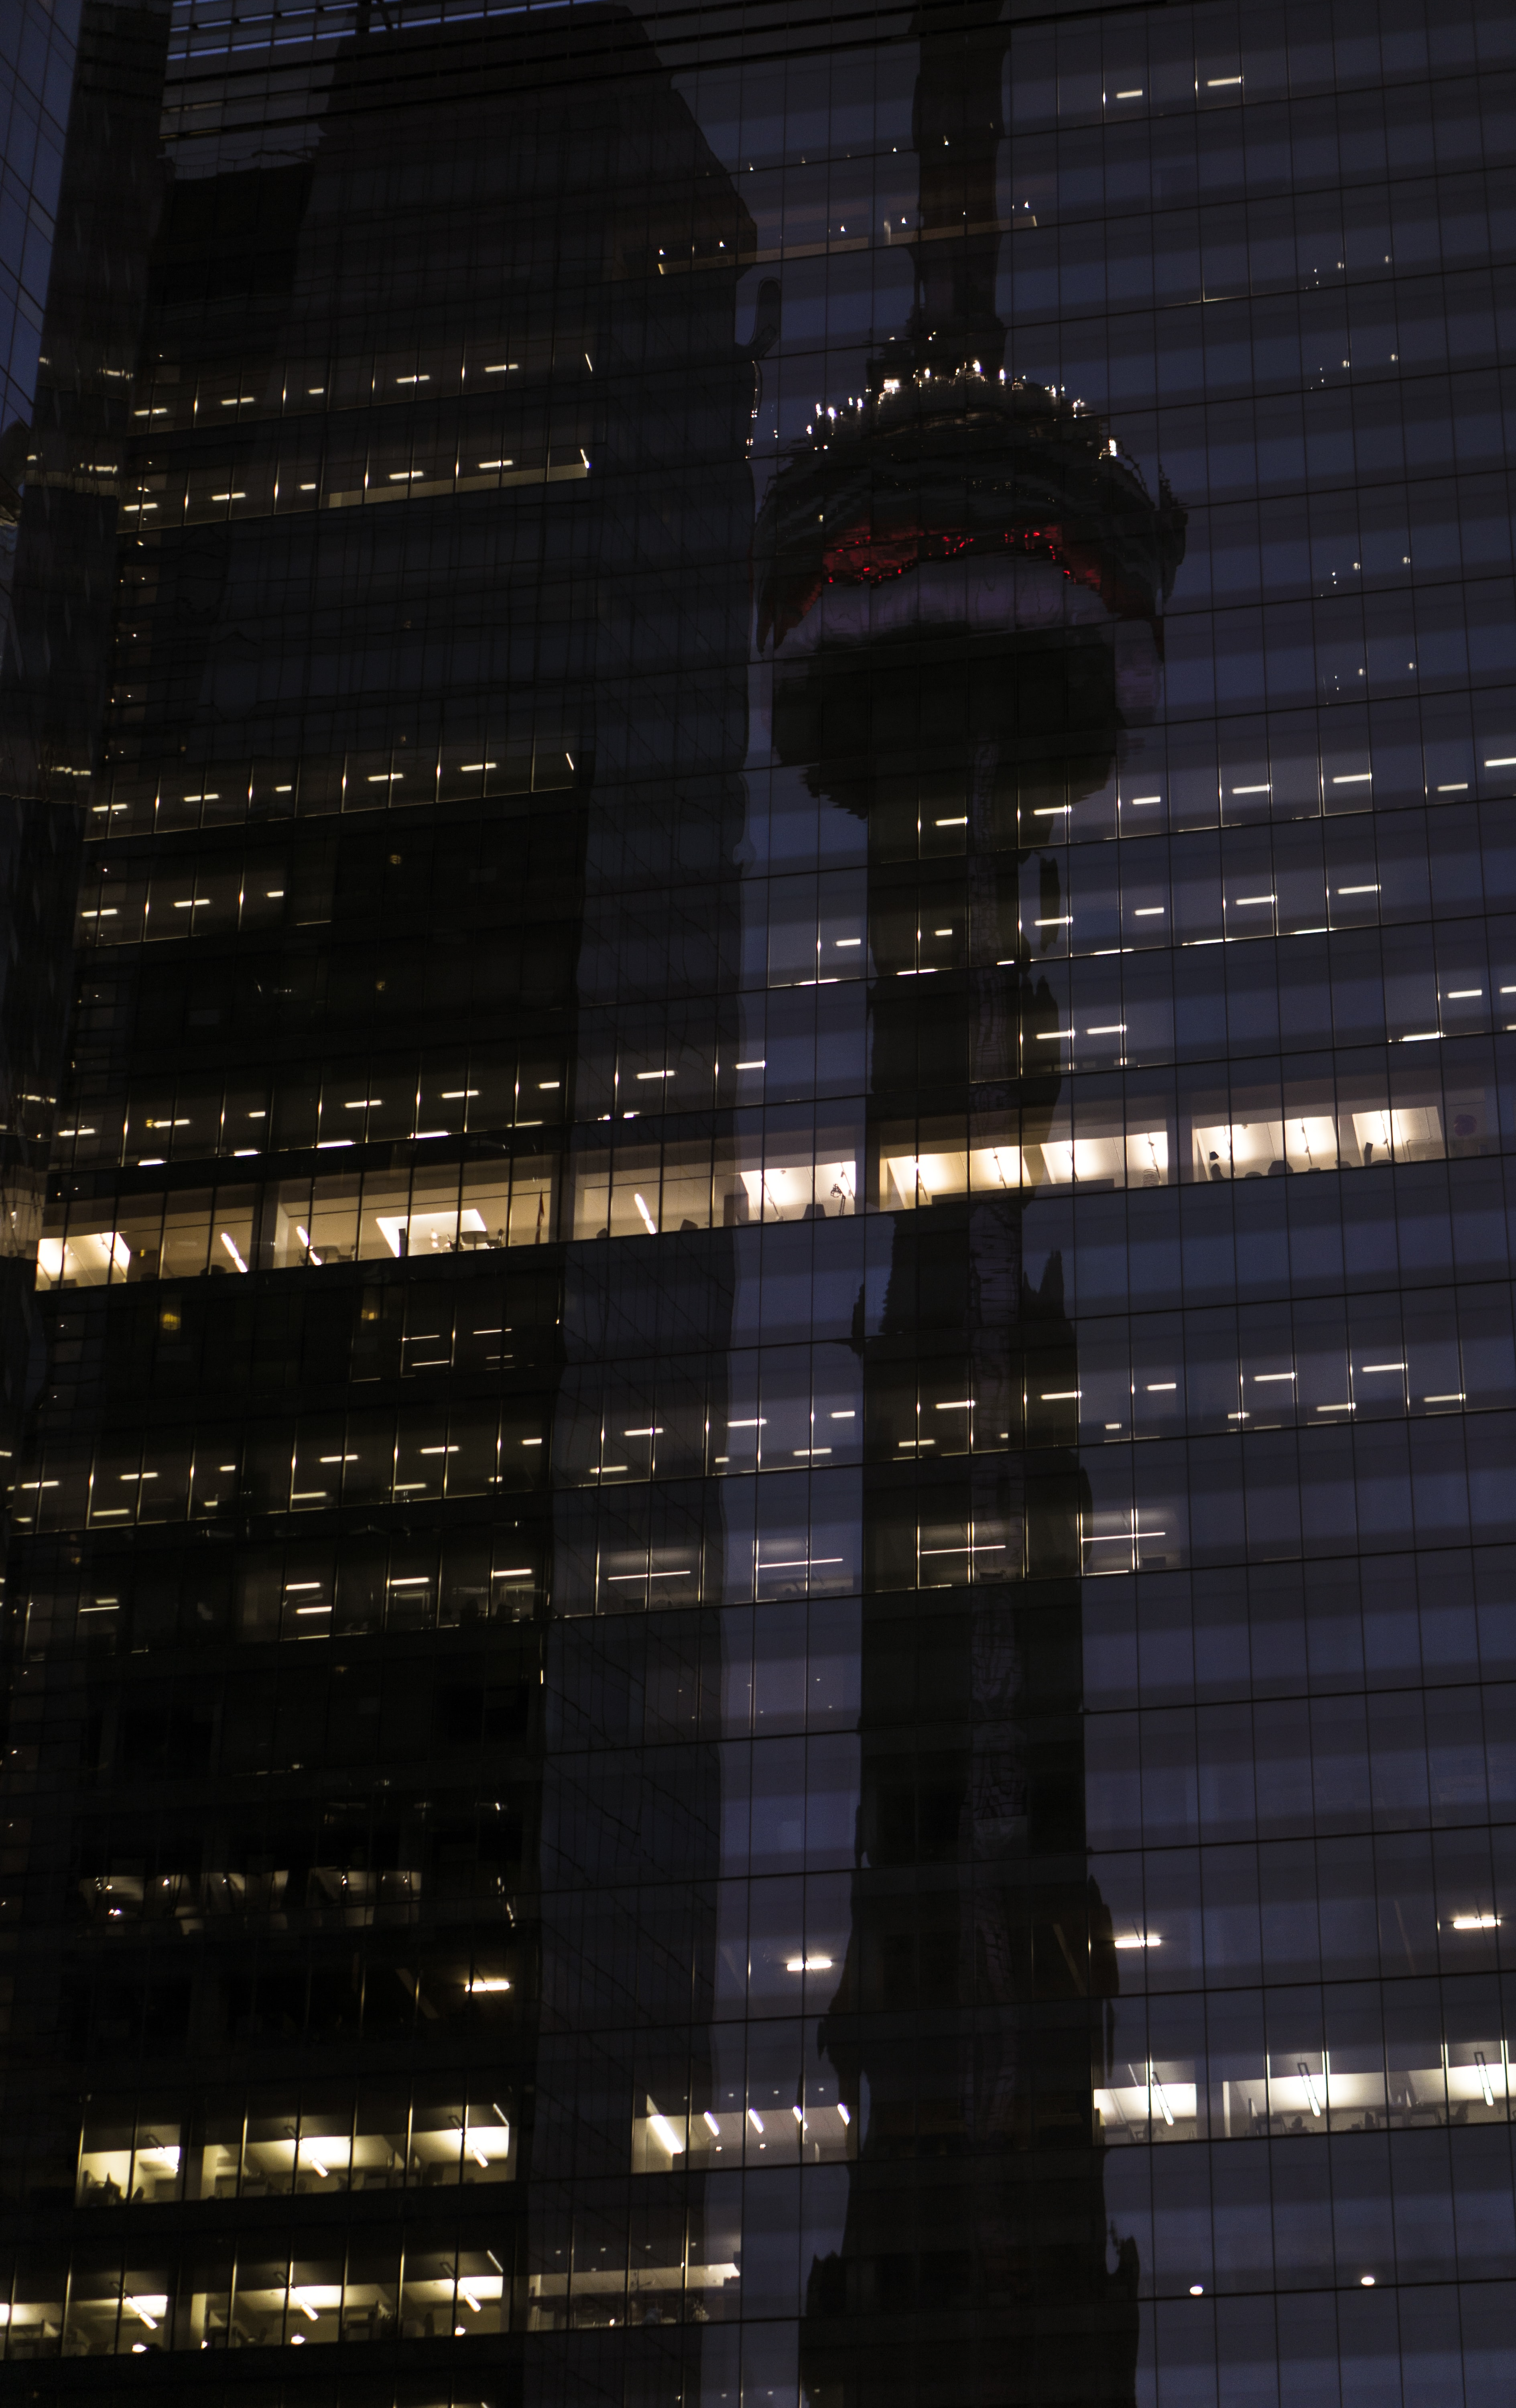 Reflection in the dark windows of a skyscrapers of the CN tower